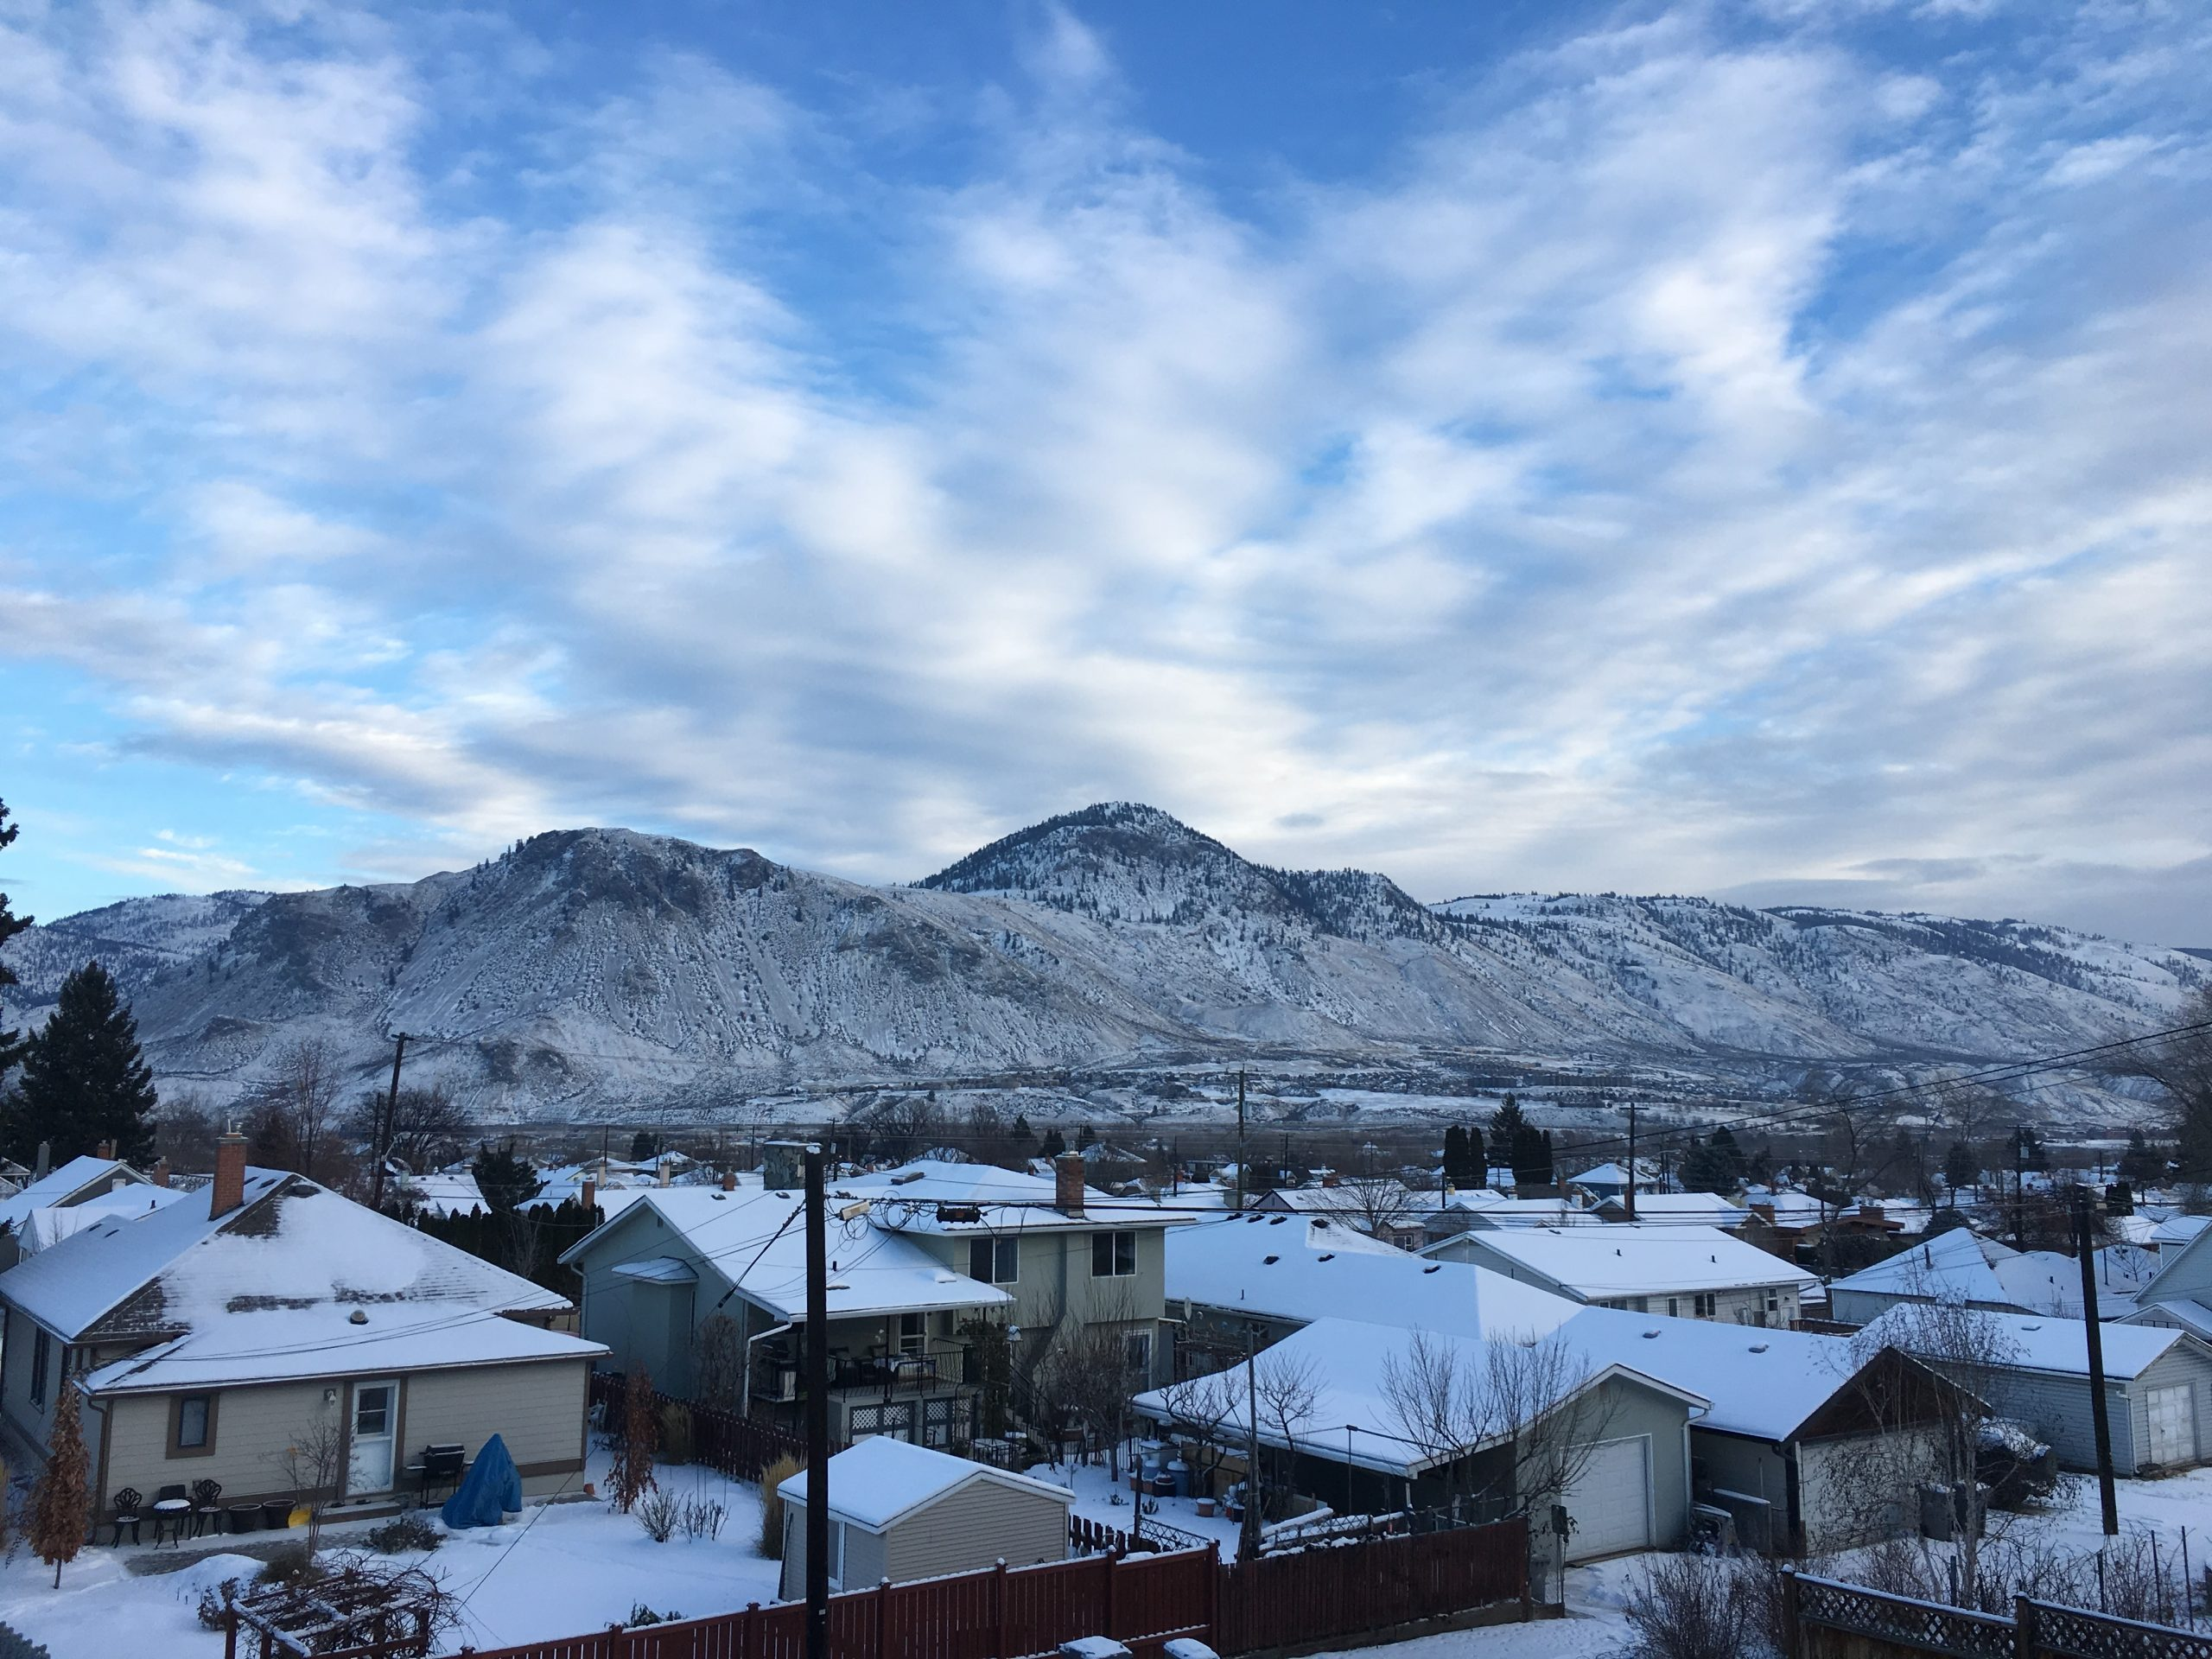 More snow for the Kamloops region